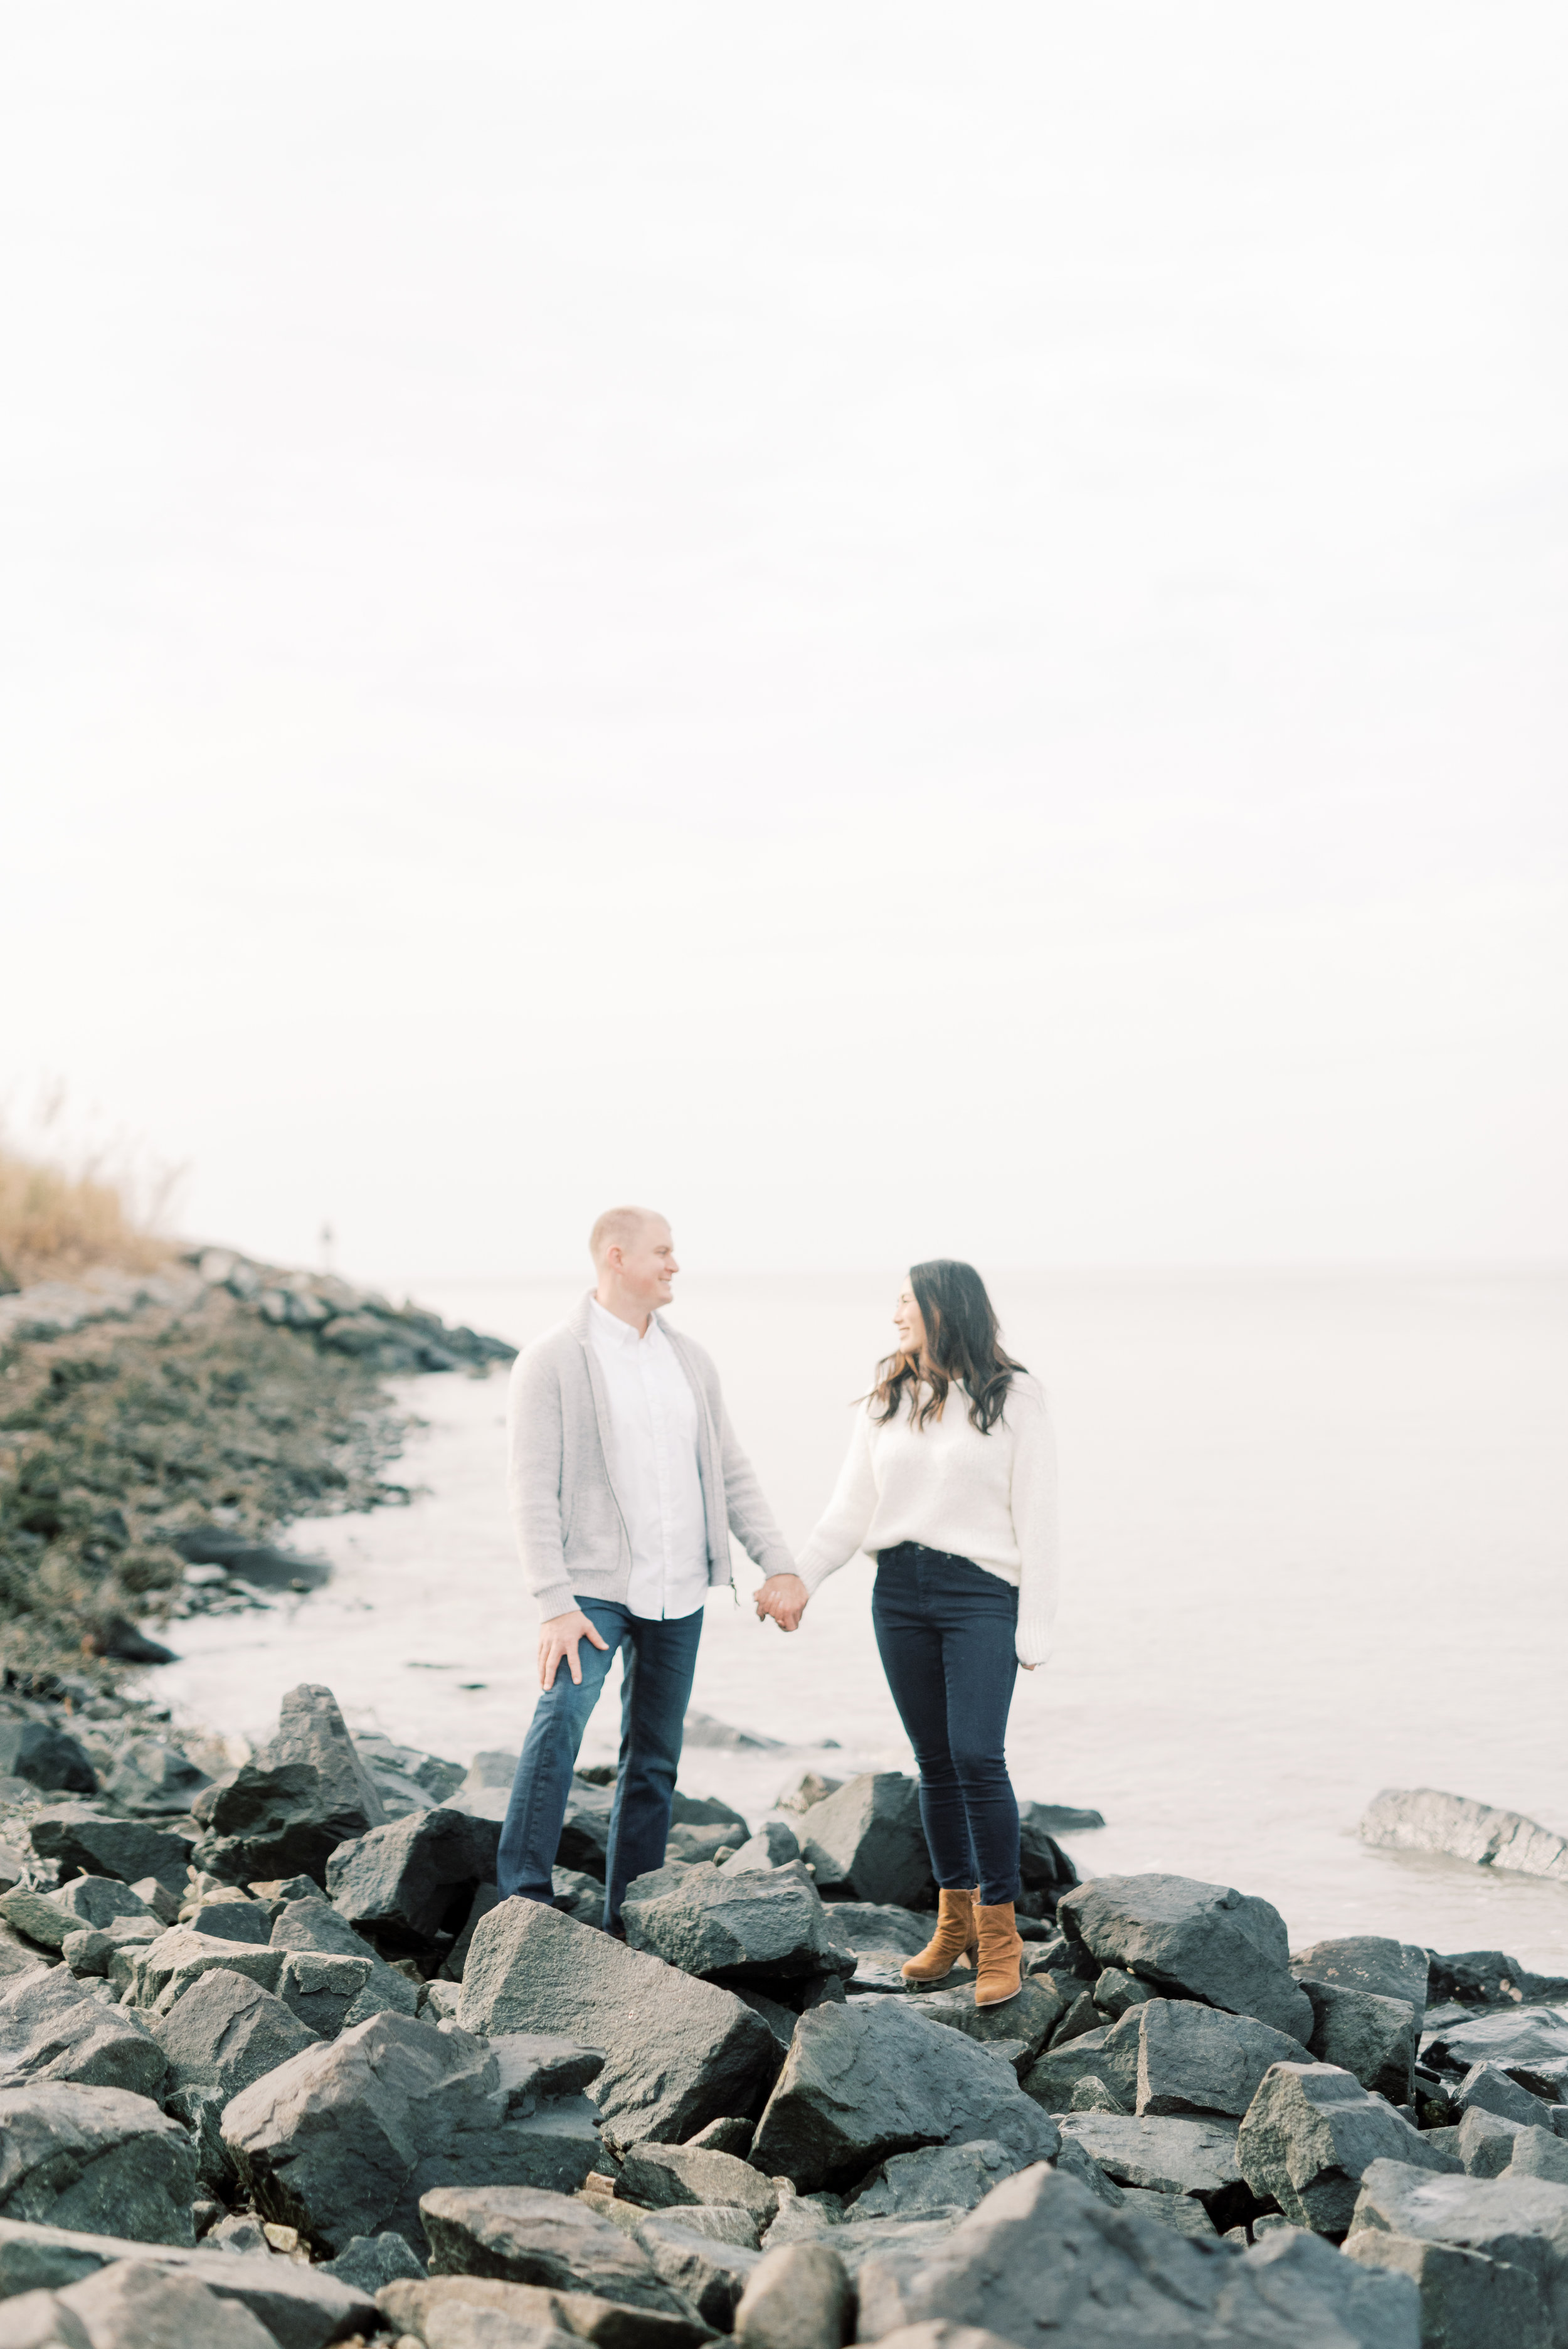 haley-richter-photography-cape-may-engagement-session-013.jpg